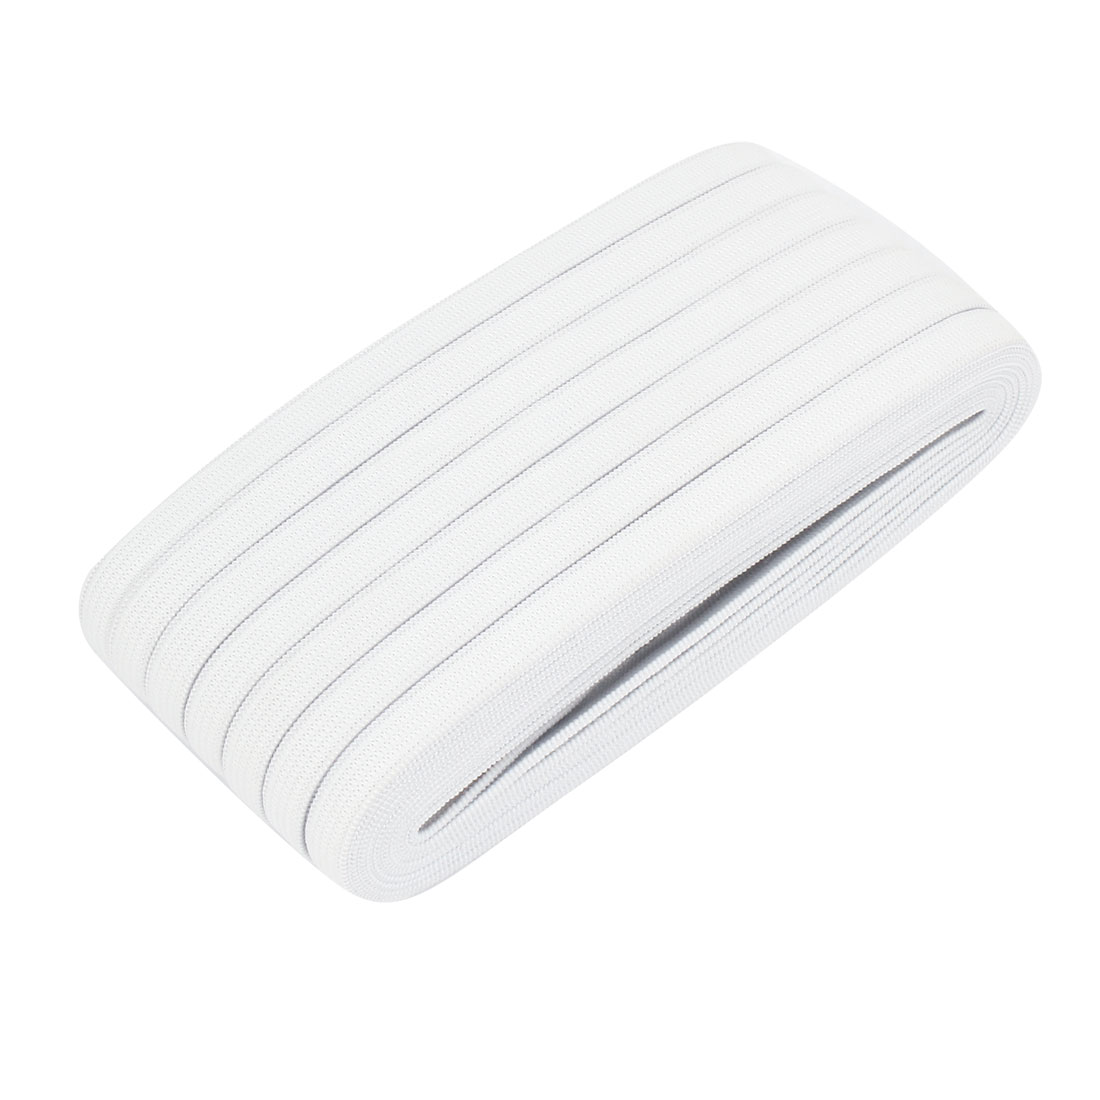 Household 20M Long 8mm Wide White Braided Shrink Stretchy Band for Trousers